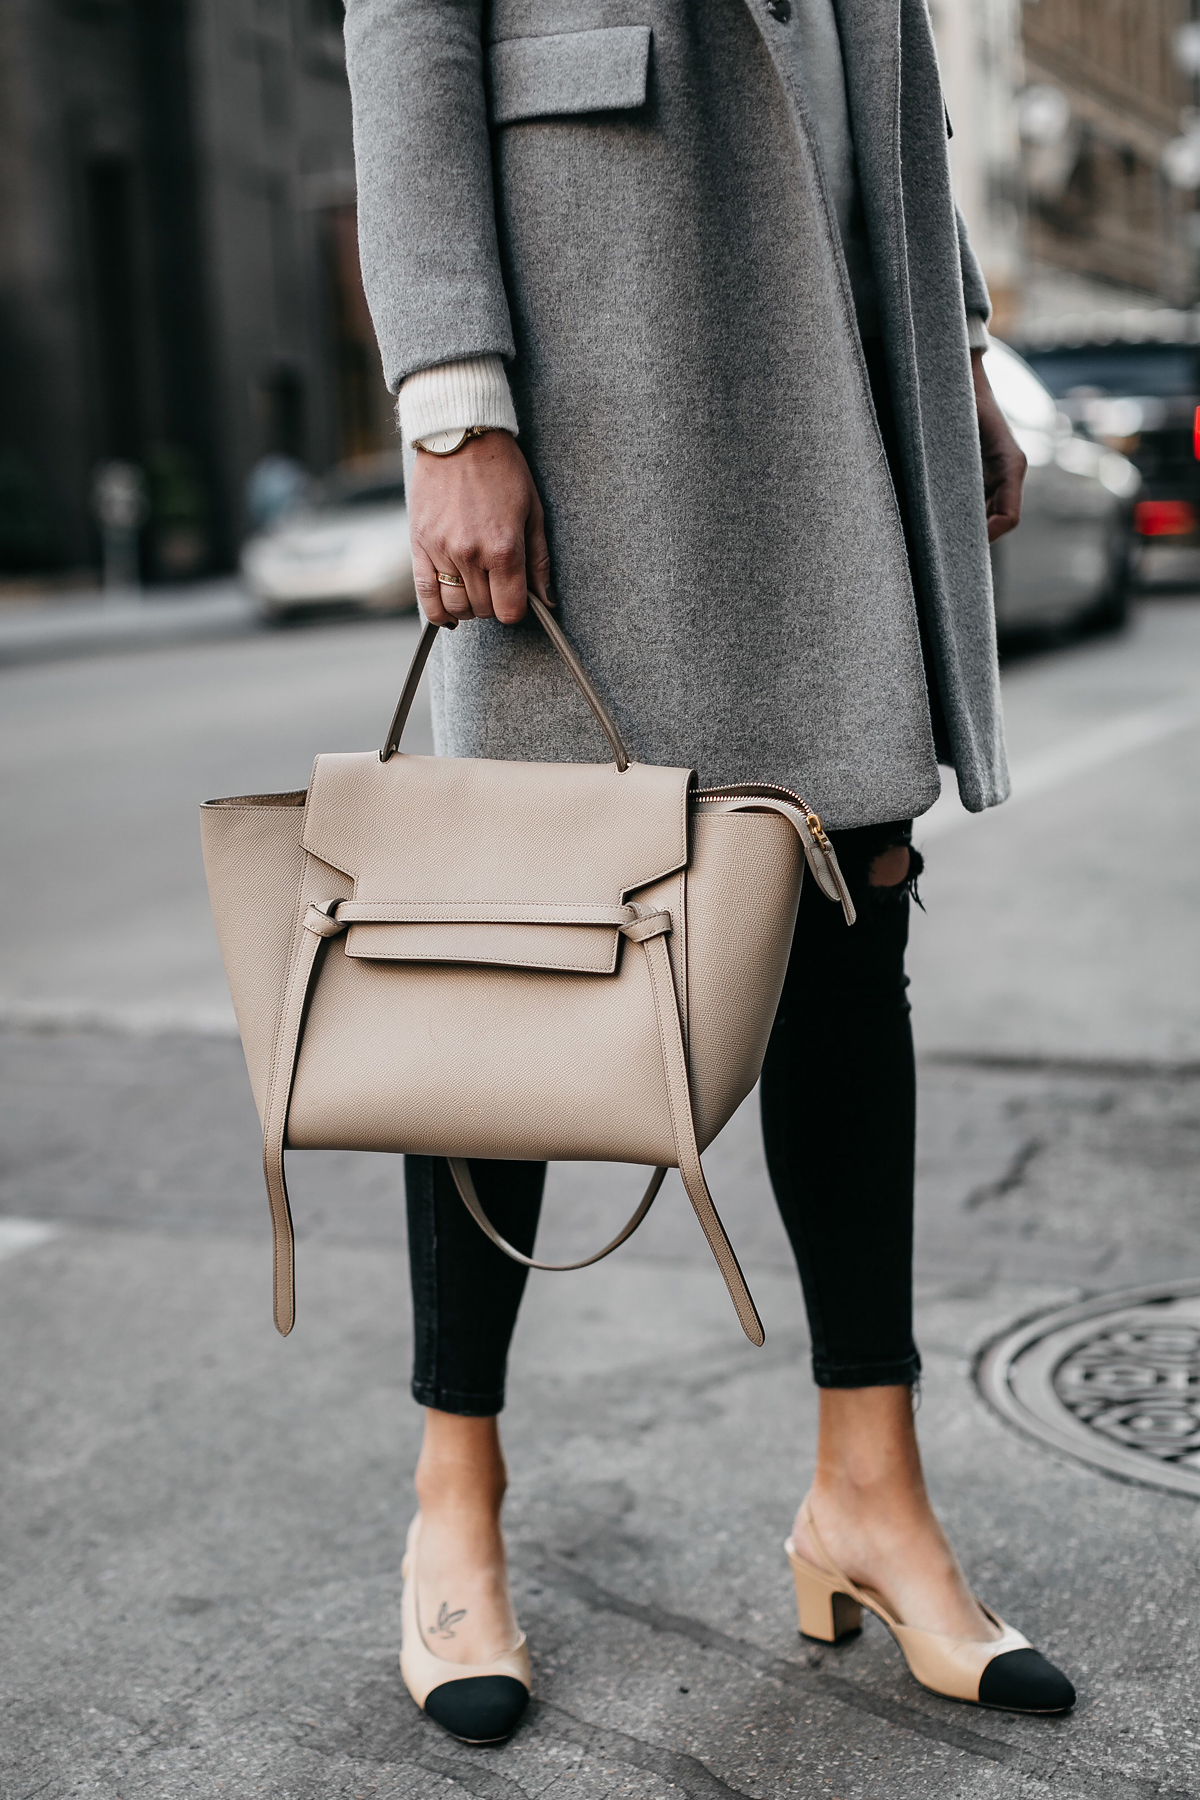 Celine Mini Belt Bag Chanel Slingbacks Grey Wool Coat Fashion Jackson Dallas Blogger Fashion Blogger Street Style